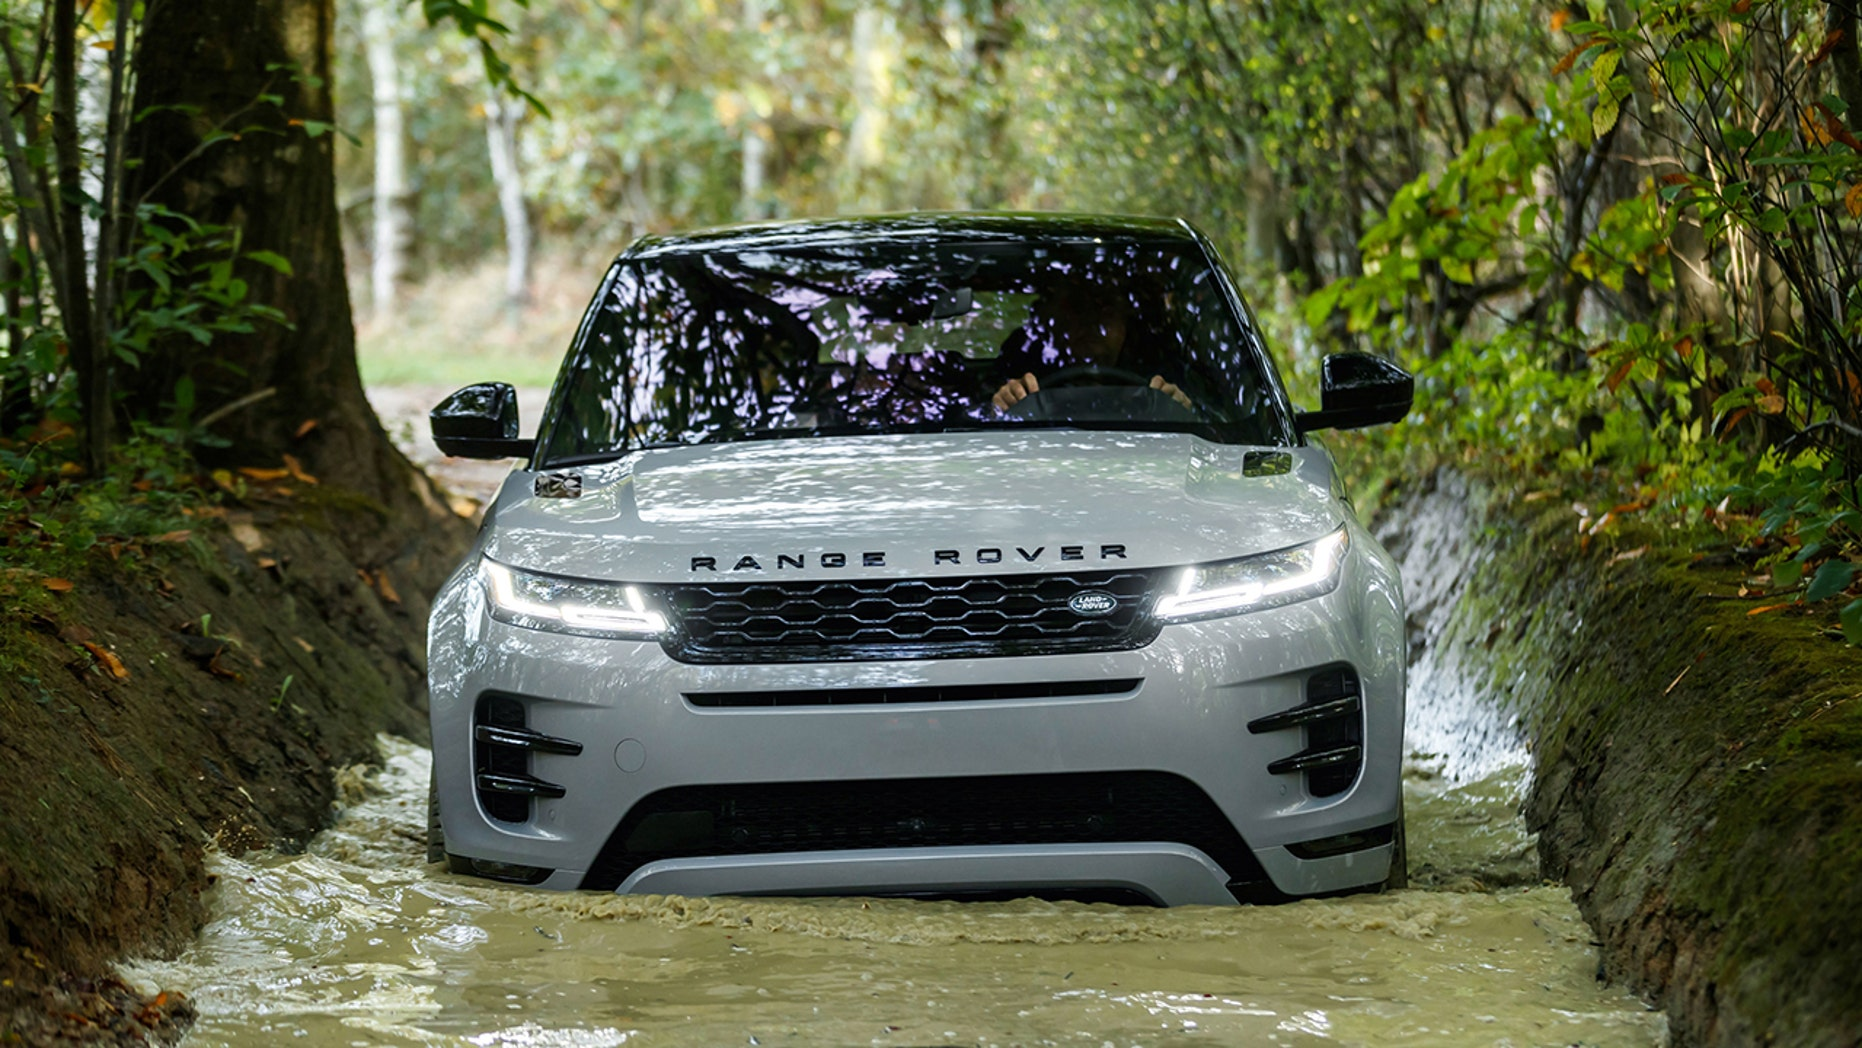 Land Rover reveals new edition of Range Rover Evoque SUV